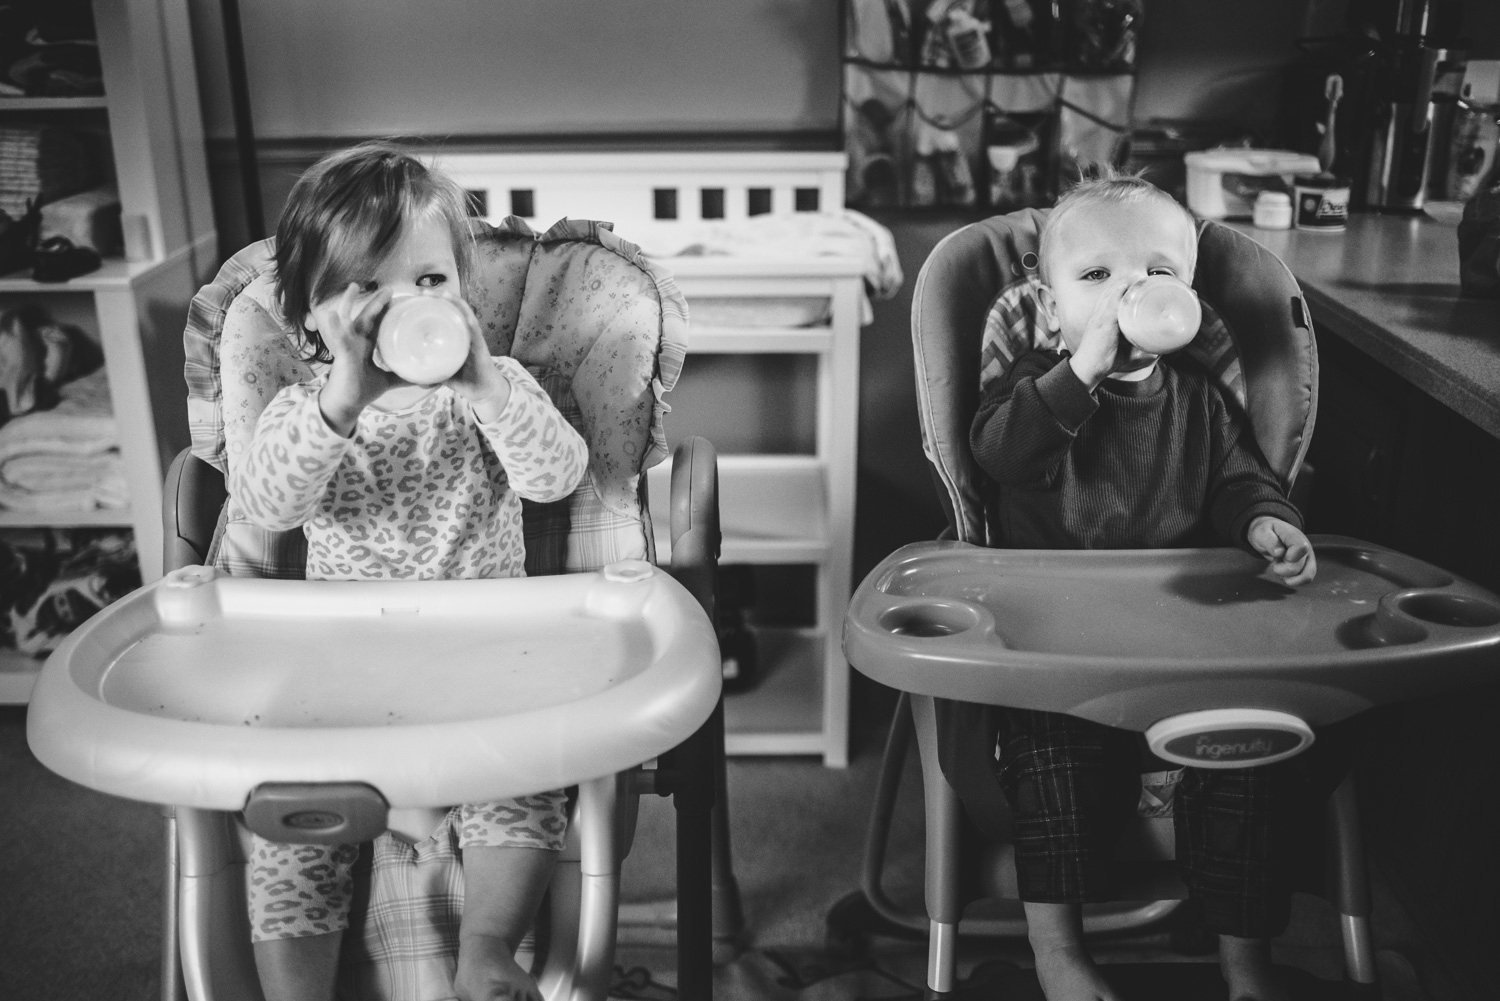 Twin babies in high chairs.